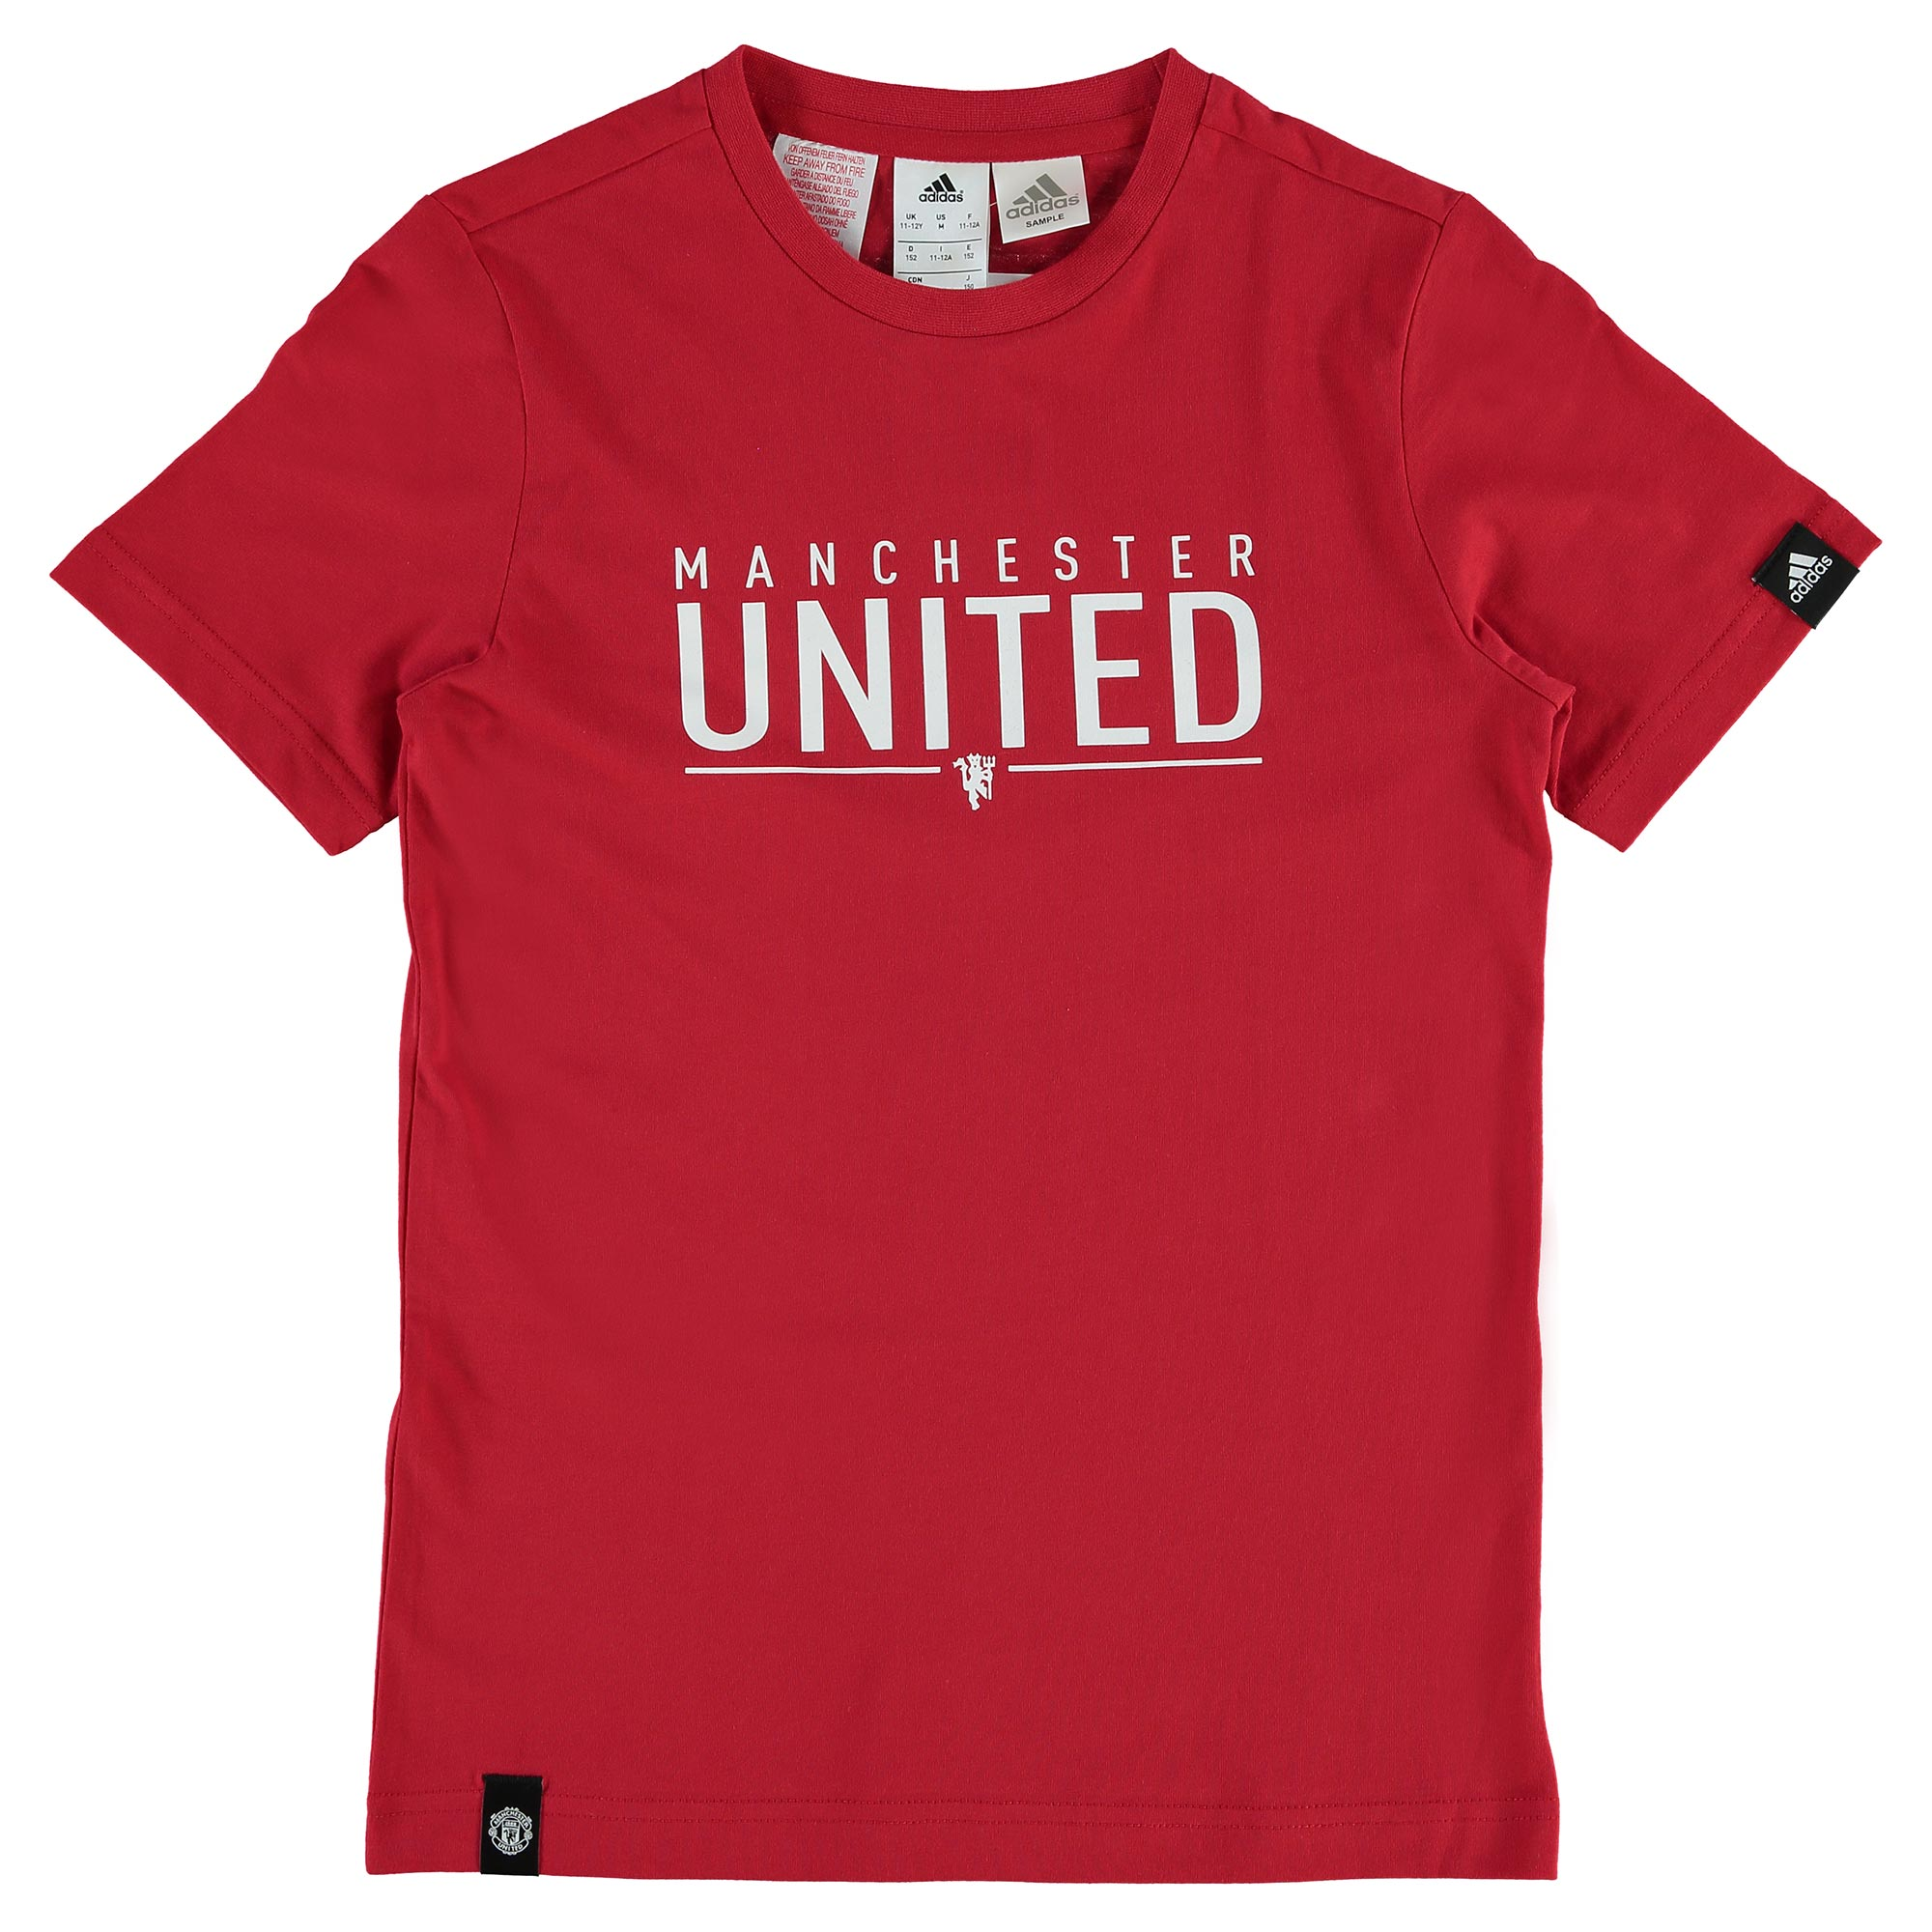 Manchester United Graphic T-Shirt - Red - Kids